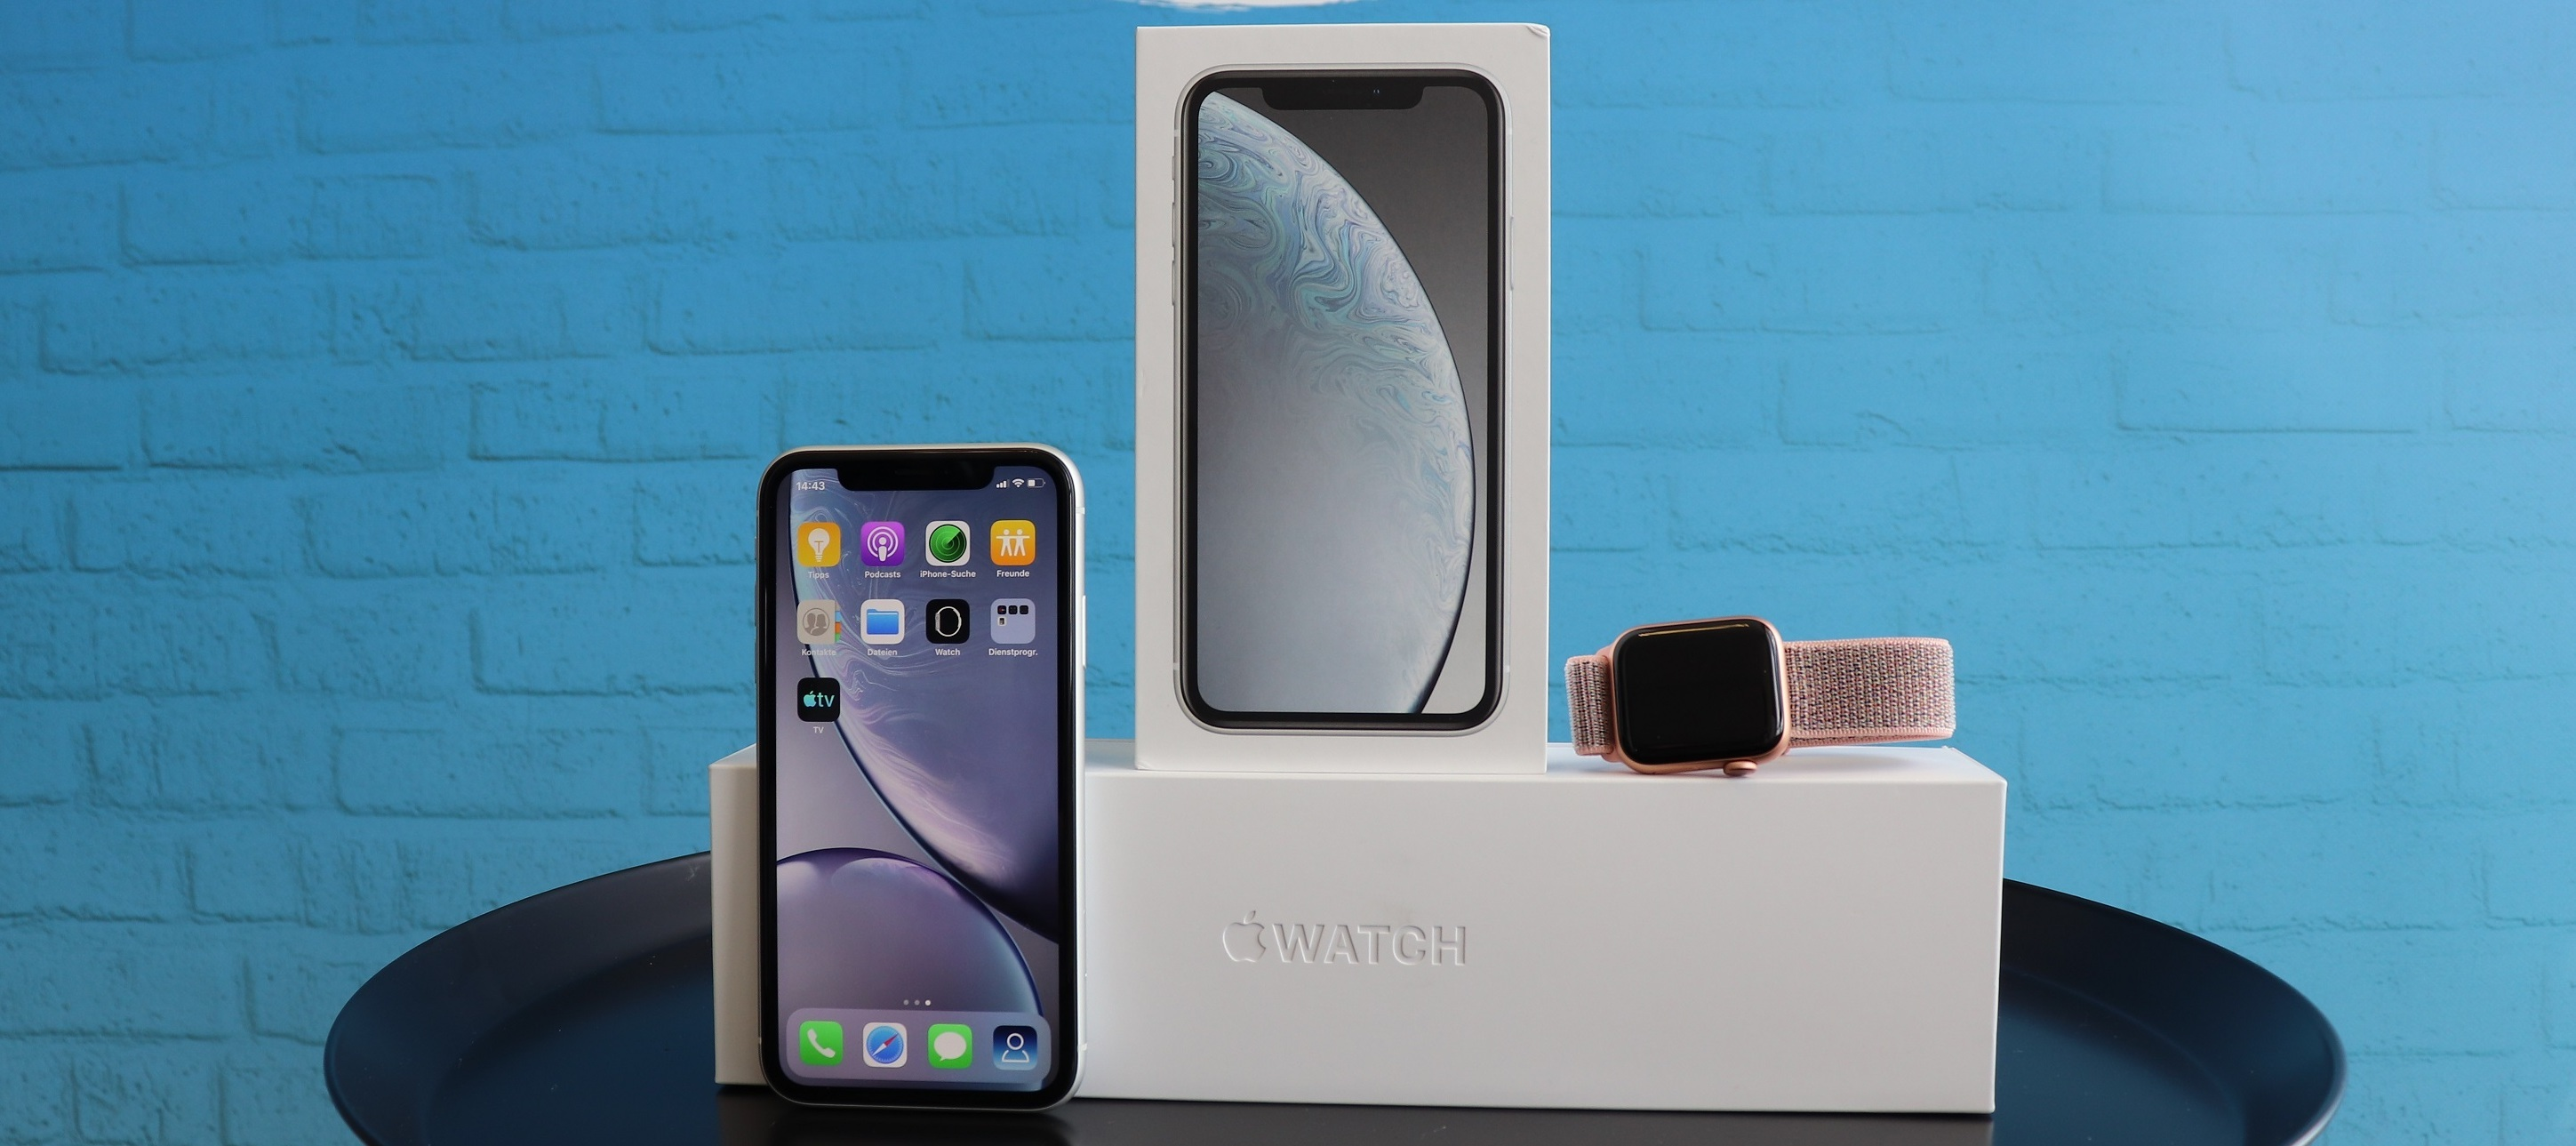 Apple Bundle: iPhone XR + Apple Watch Series 4 - Let's get ready to bundle!